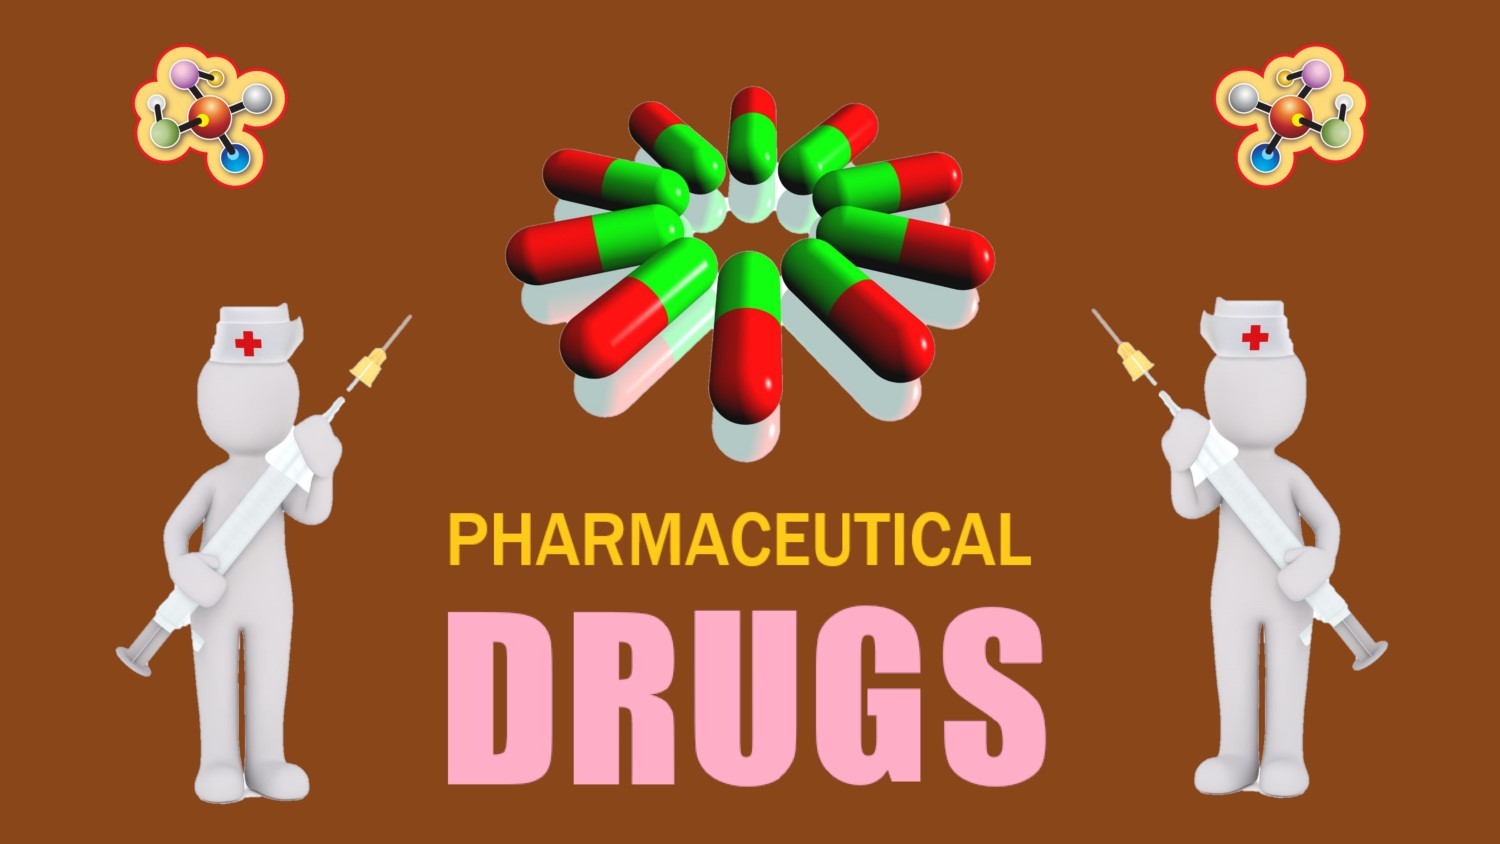 pharmaceutical drugs-pharma times now